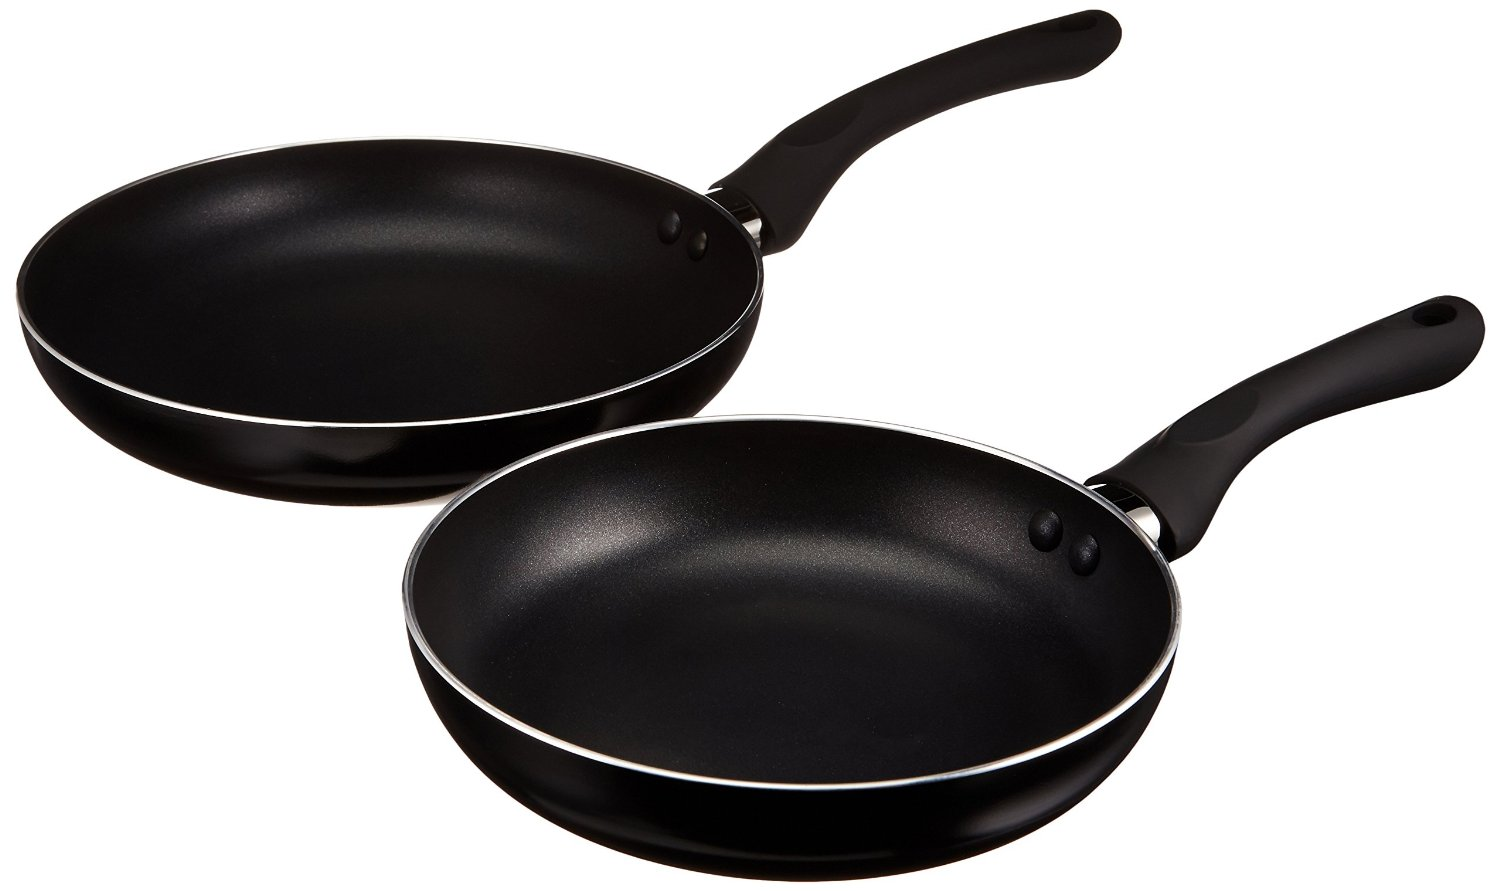 AmazonBasics 2-Piece Nonstick Fry Pan Set